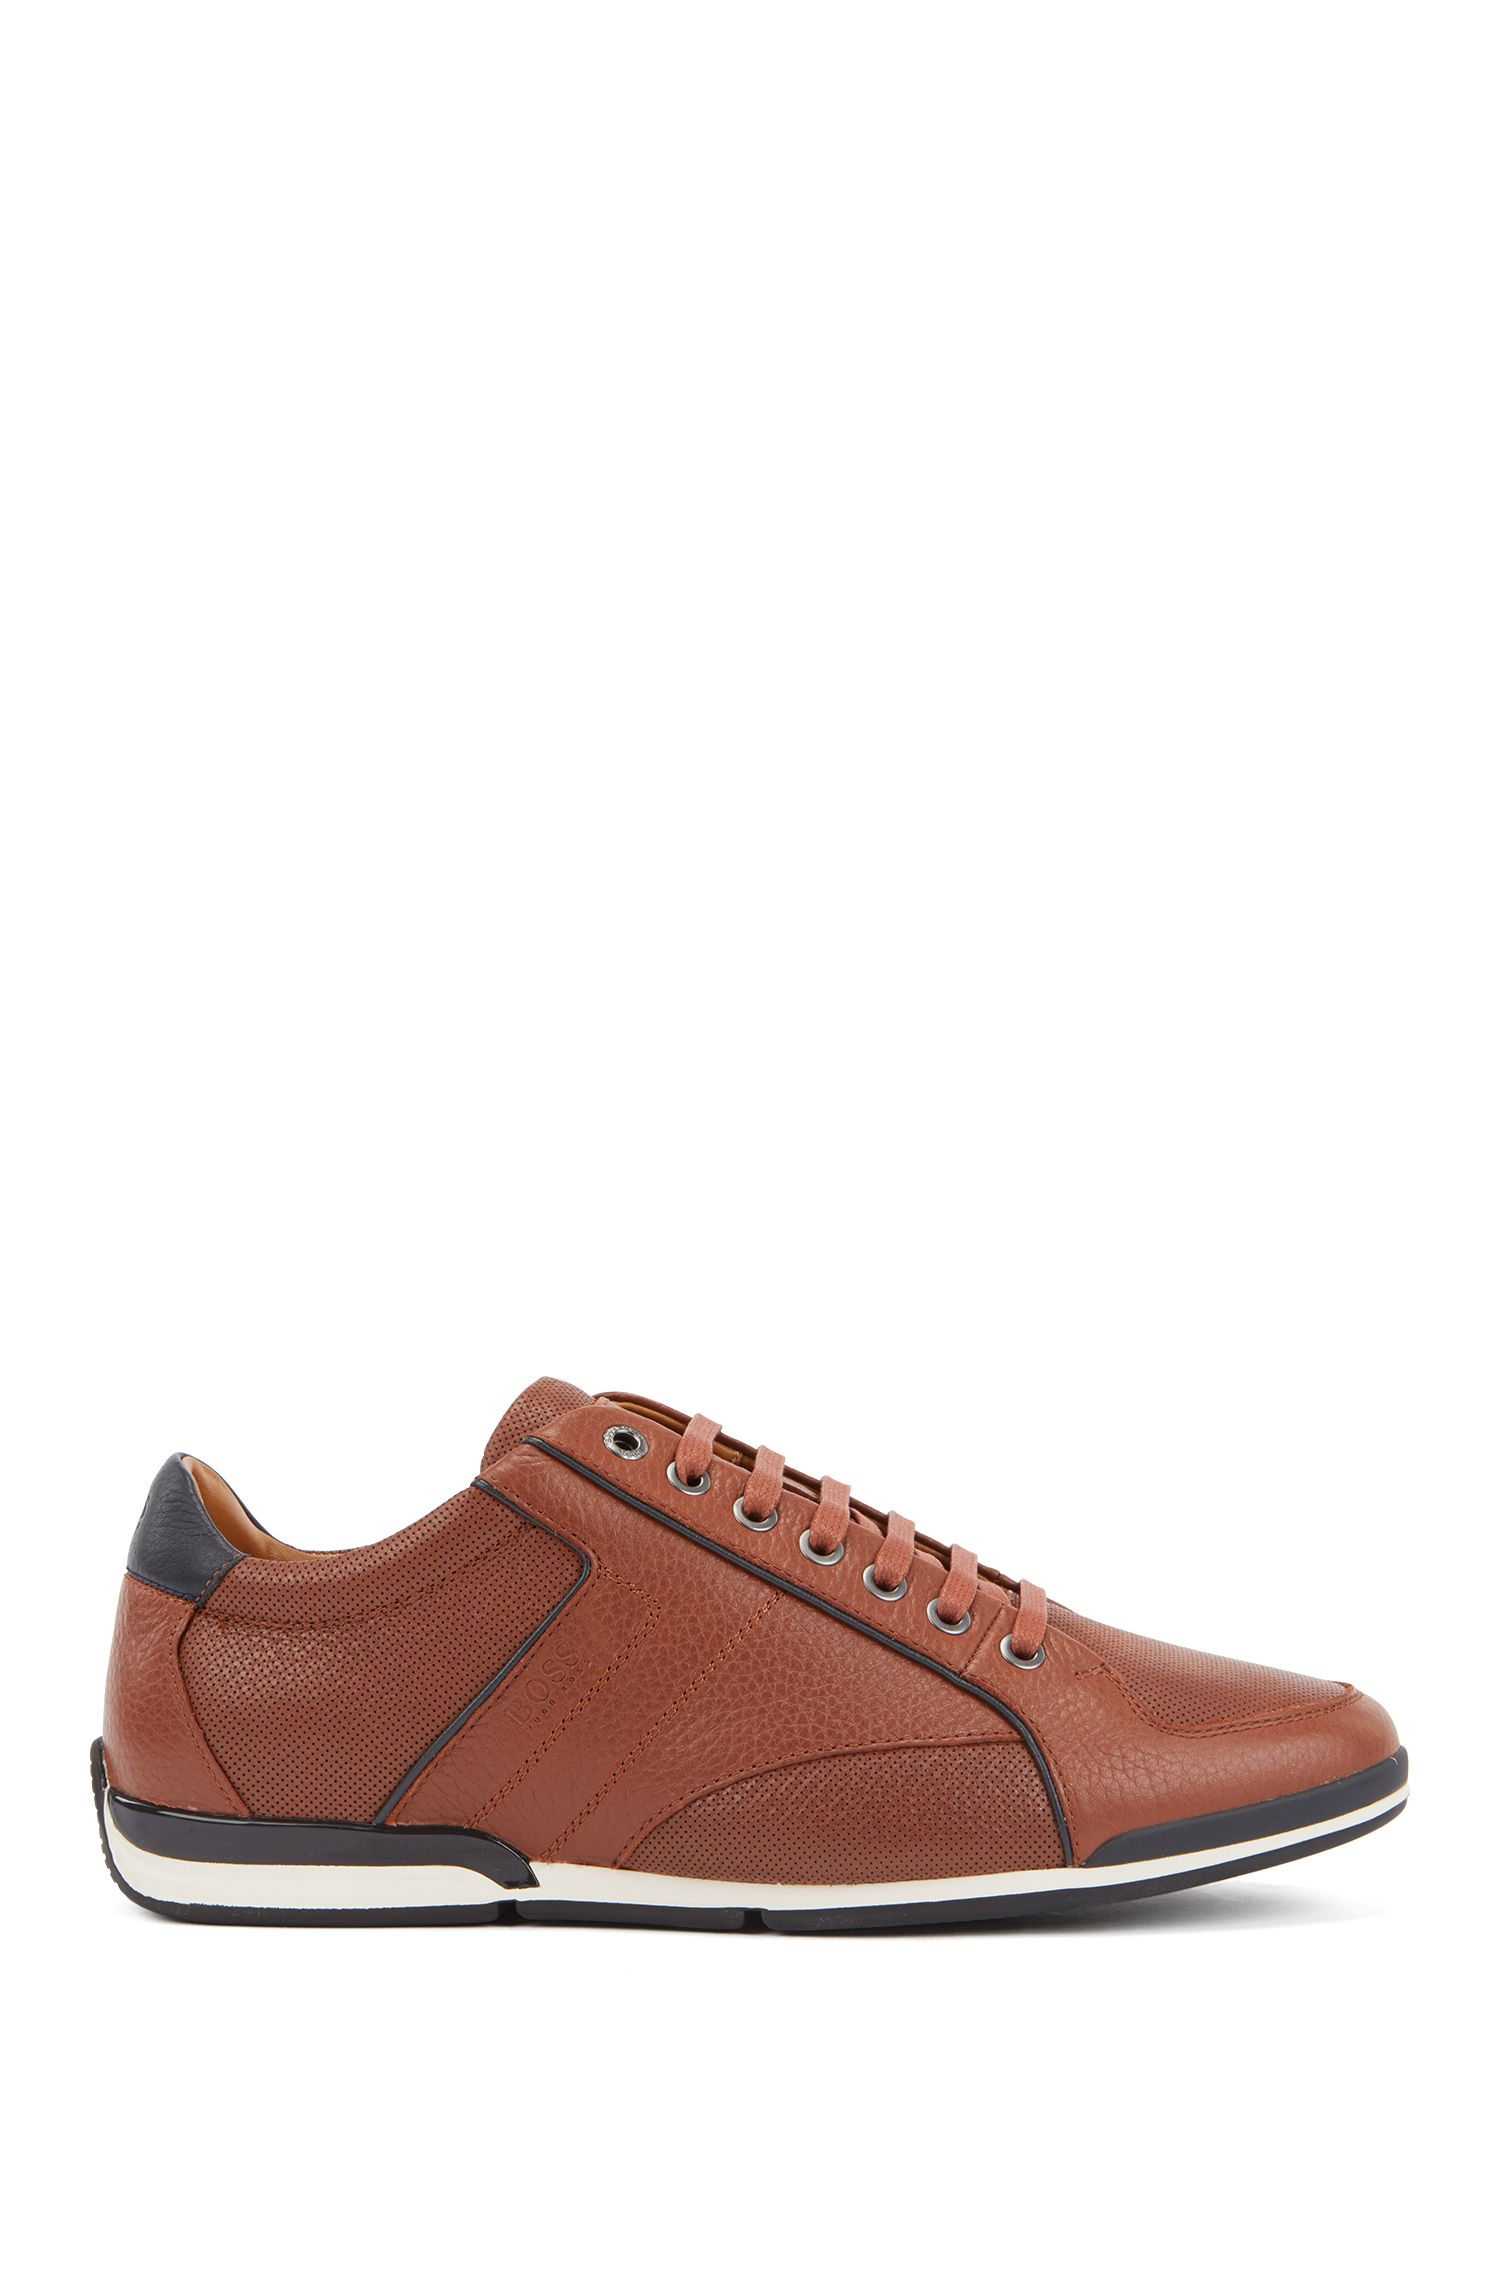 Sneakers low-top in pelle martellata con dettaglio a contrasto, Marrone